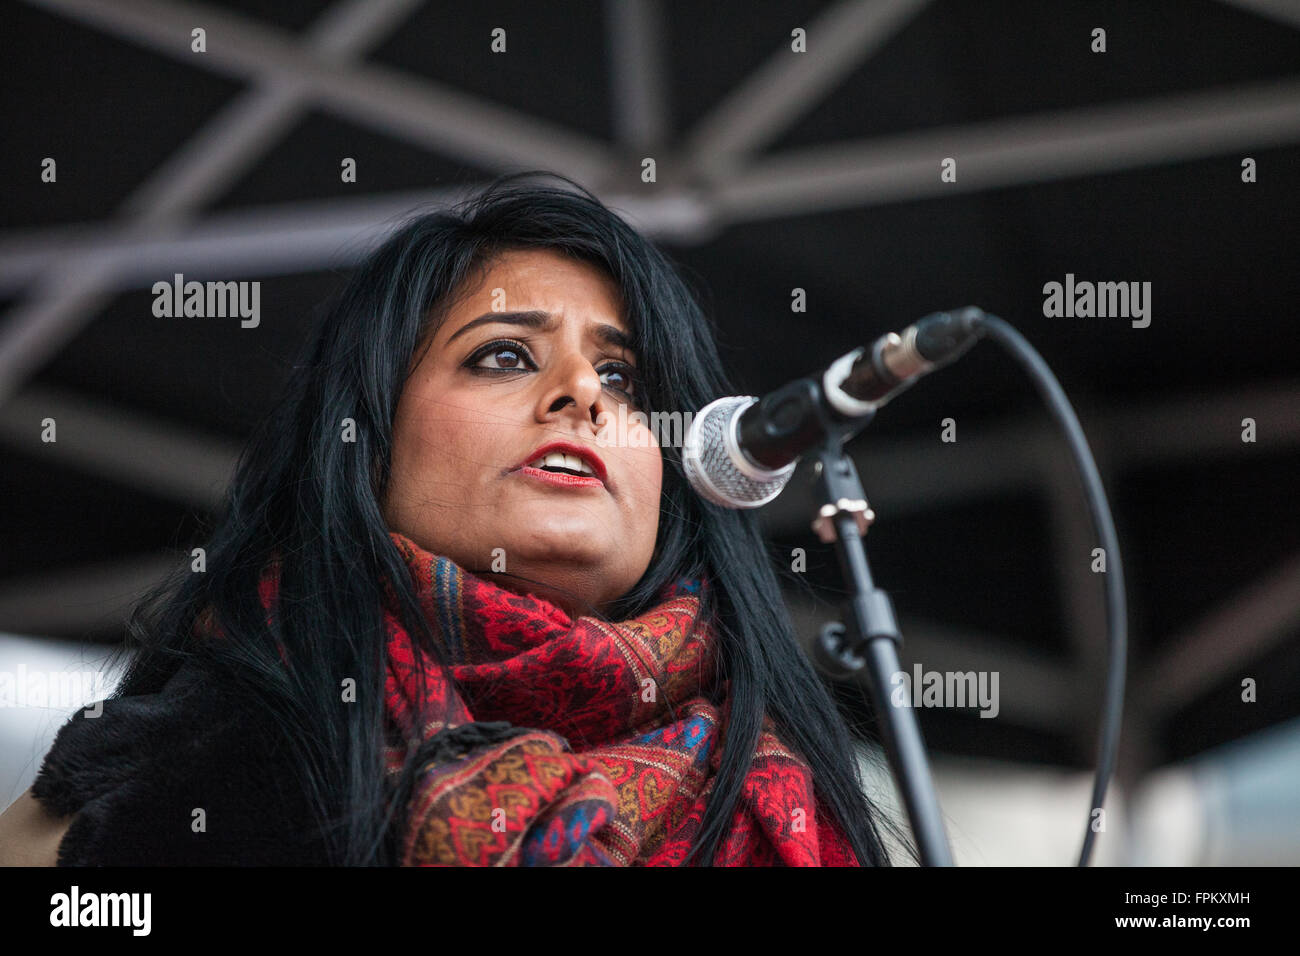 London, UK. 19th March, 2016. Maz Saleem, daughter of the late Mohammed Saleem, who was murdered by a racist as - Stock Image